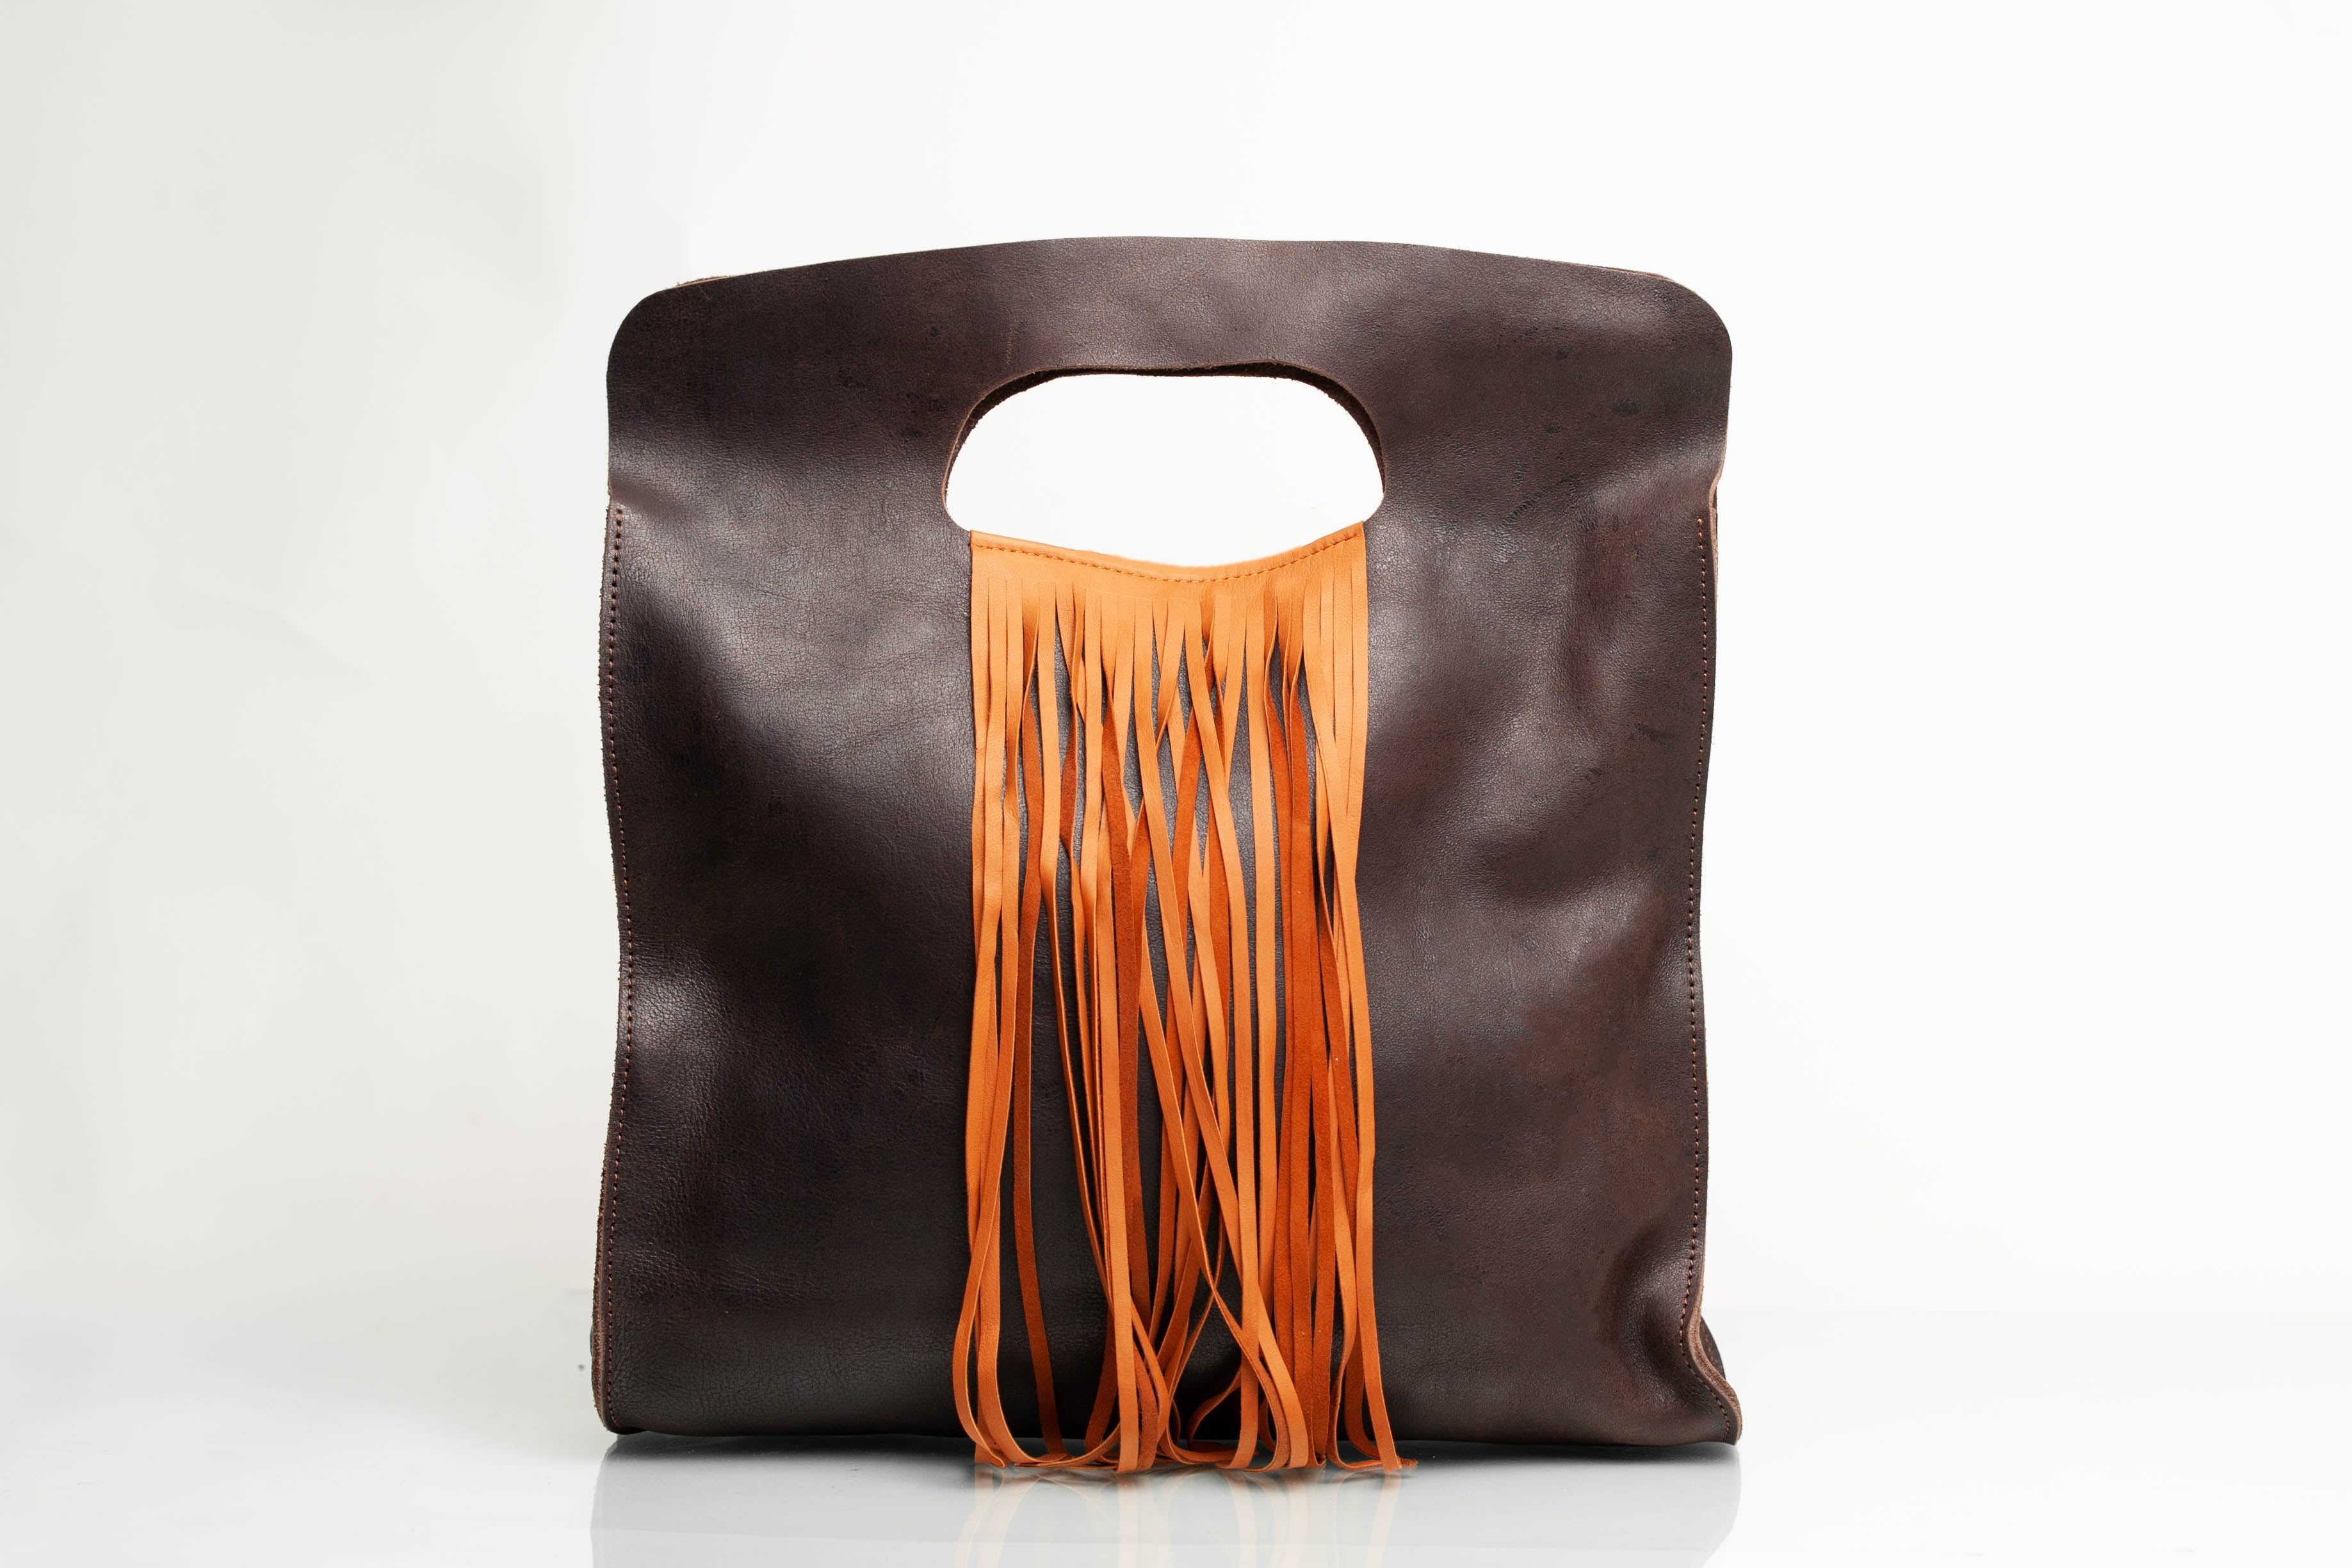 Ethiopian Leather Handbag with Fringe